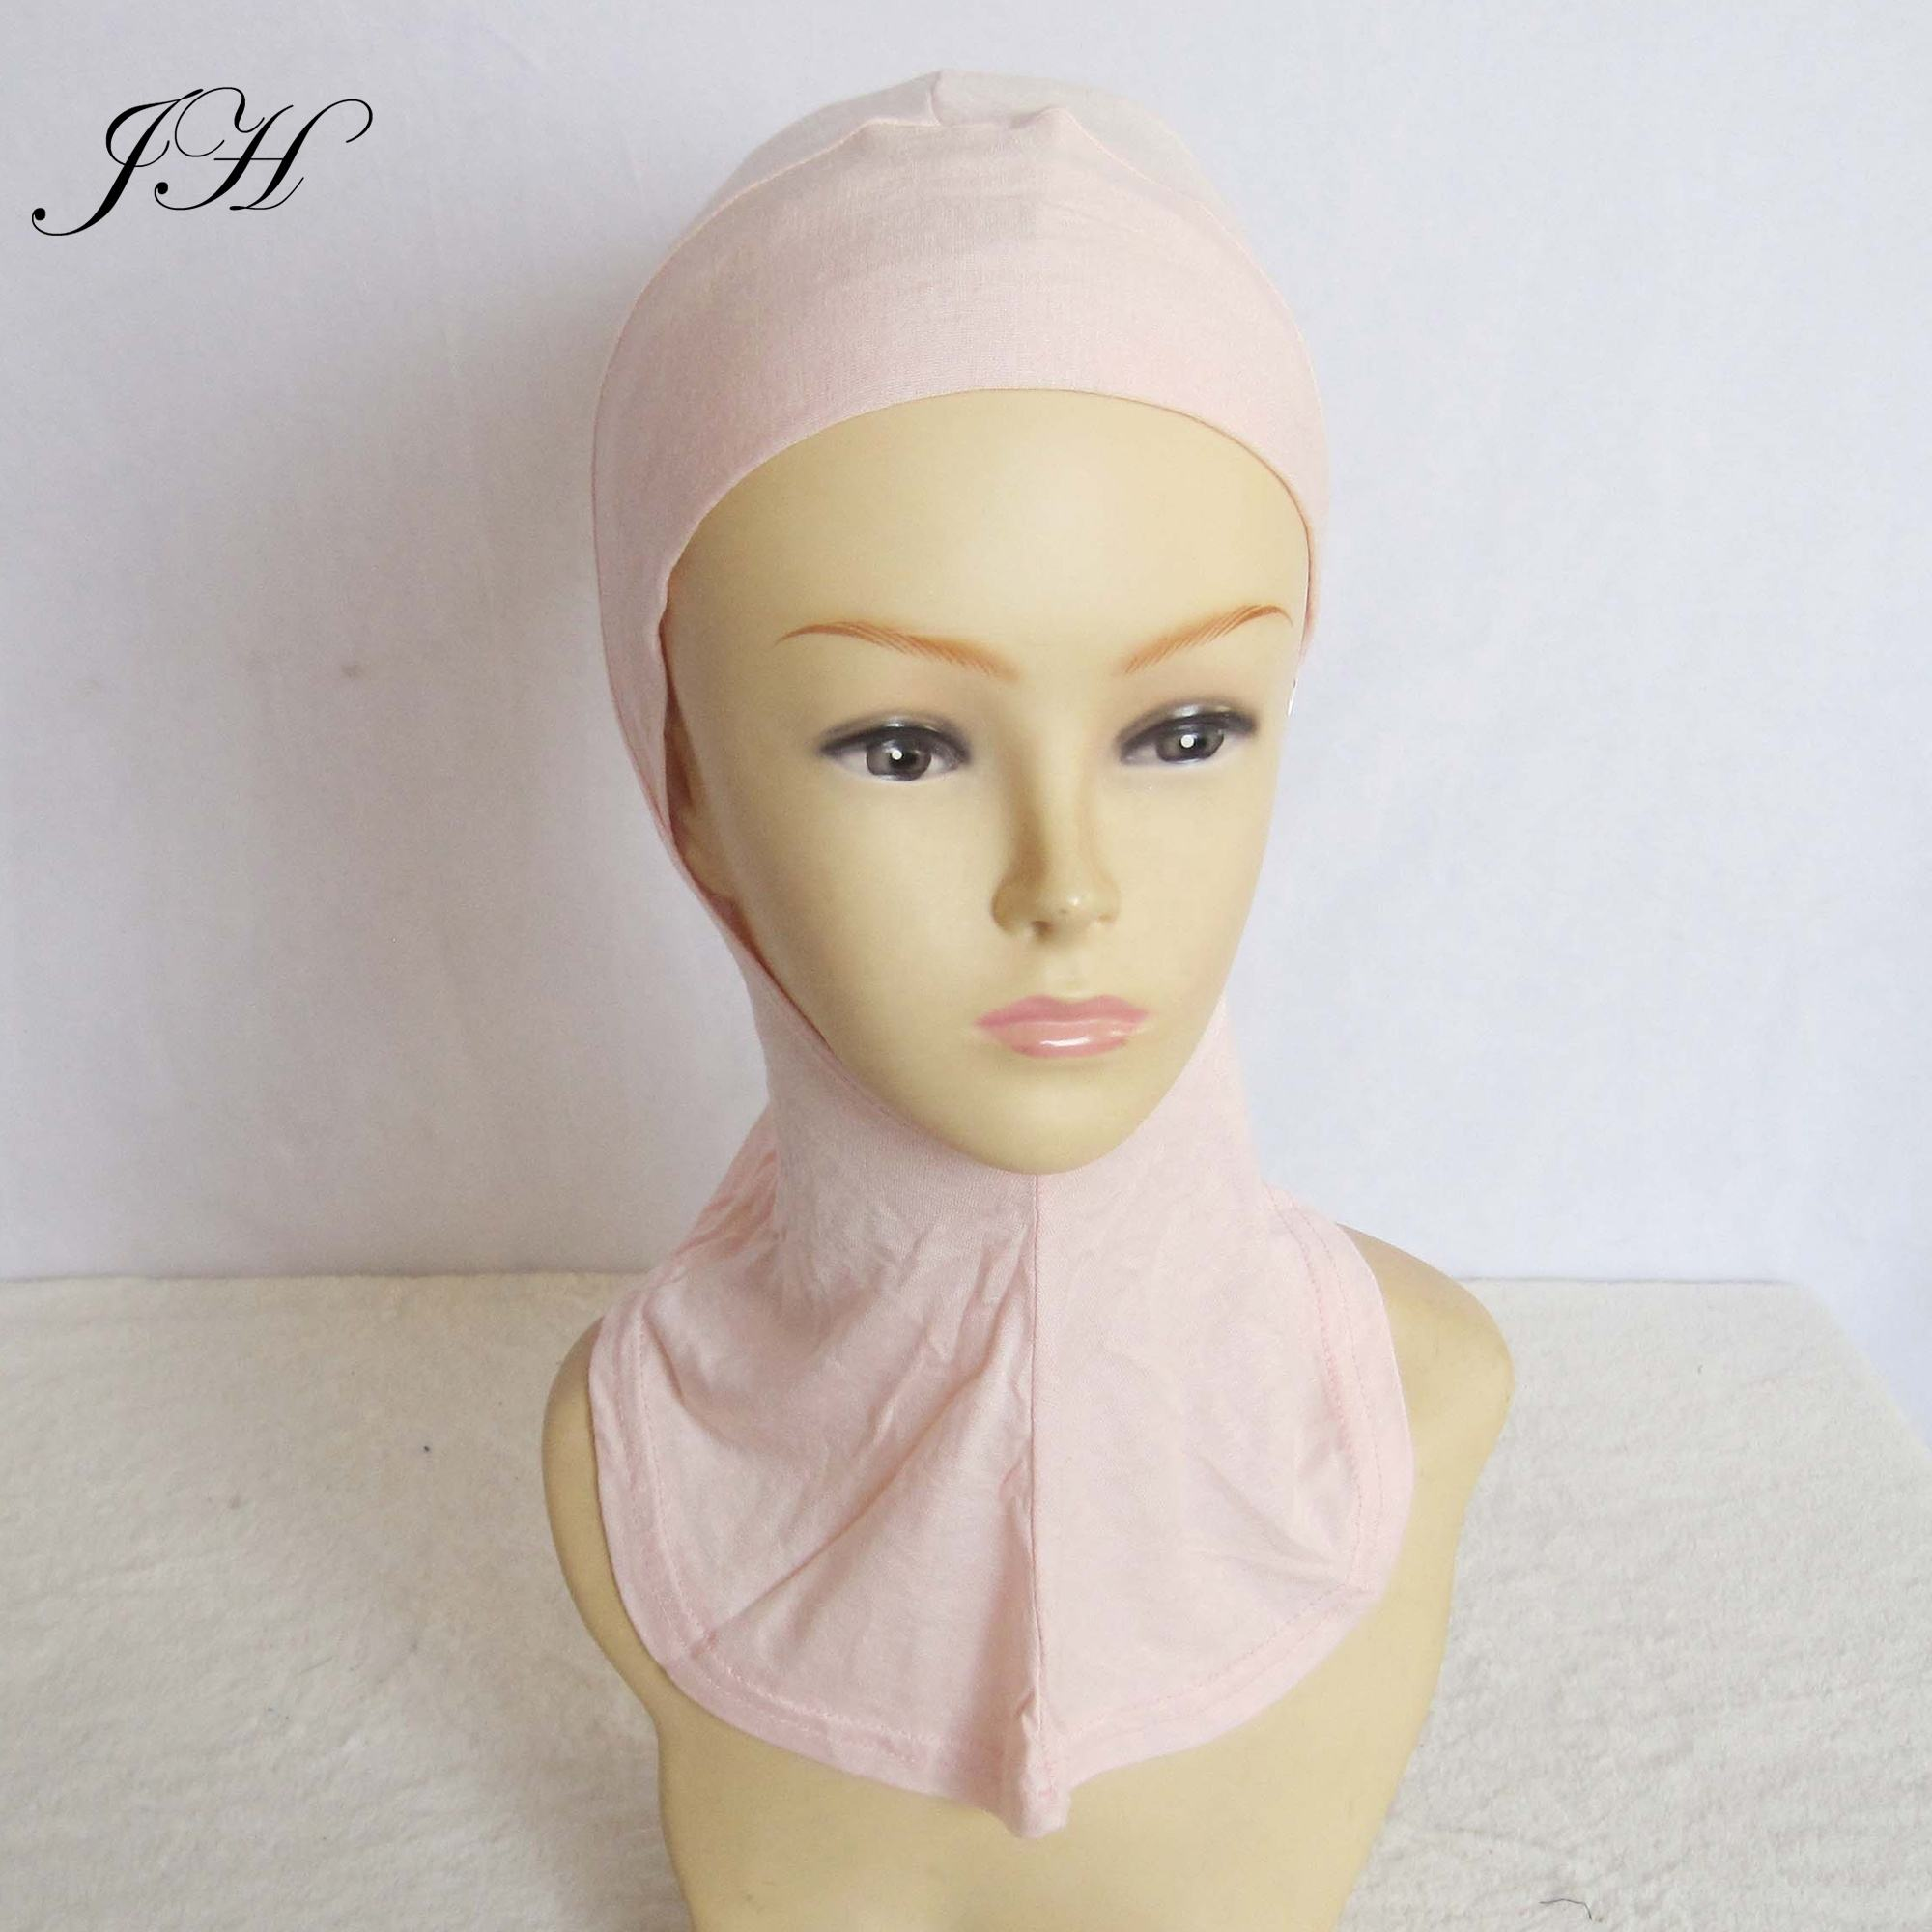 2019 Hot Selling Fashion Soft Plain Cotton Jersey Full Cover Ninja Hijab Under scarf Womens Bonnet Hats Islamic Inner Cap